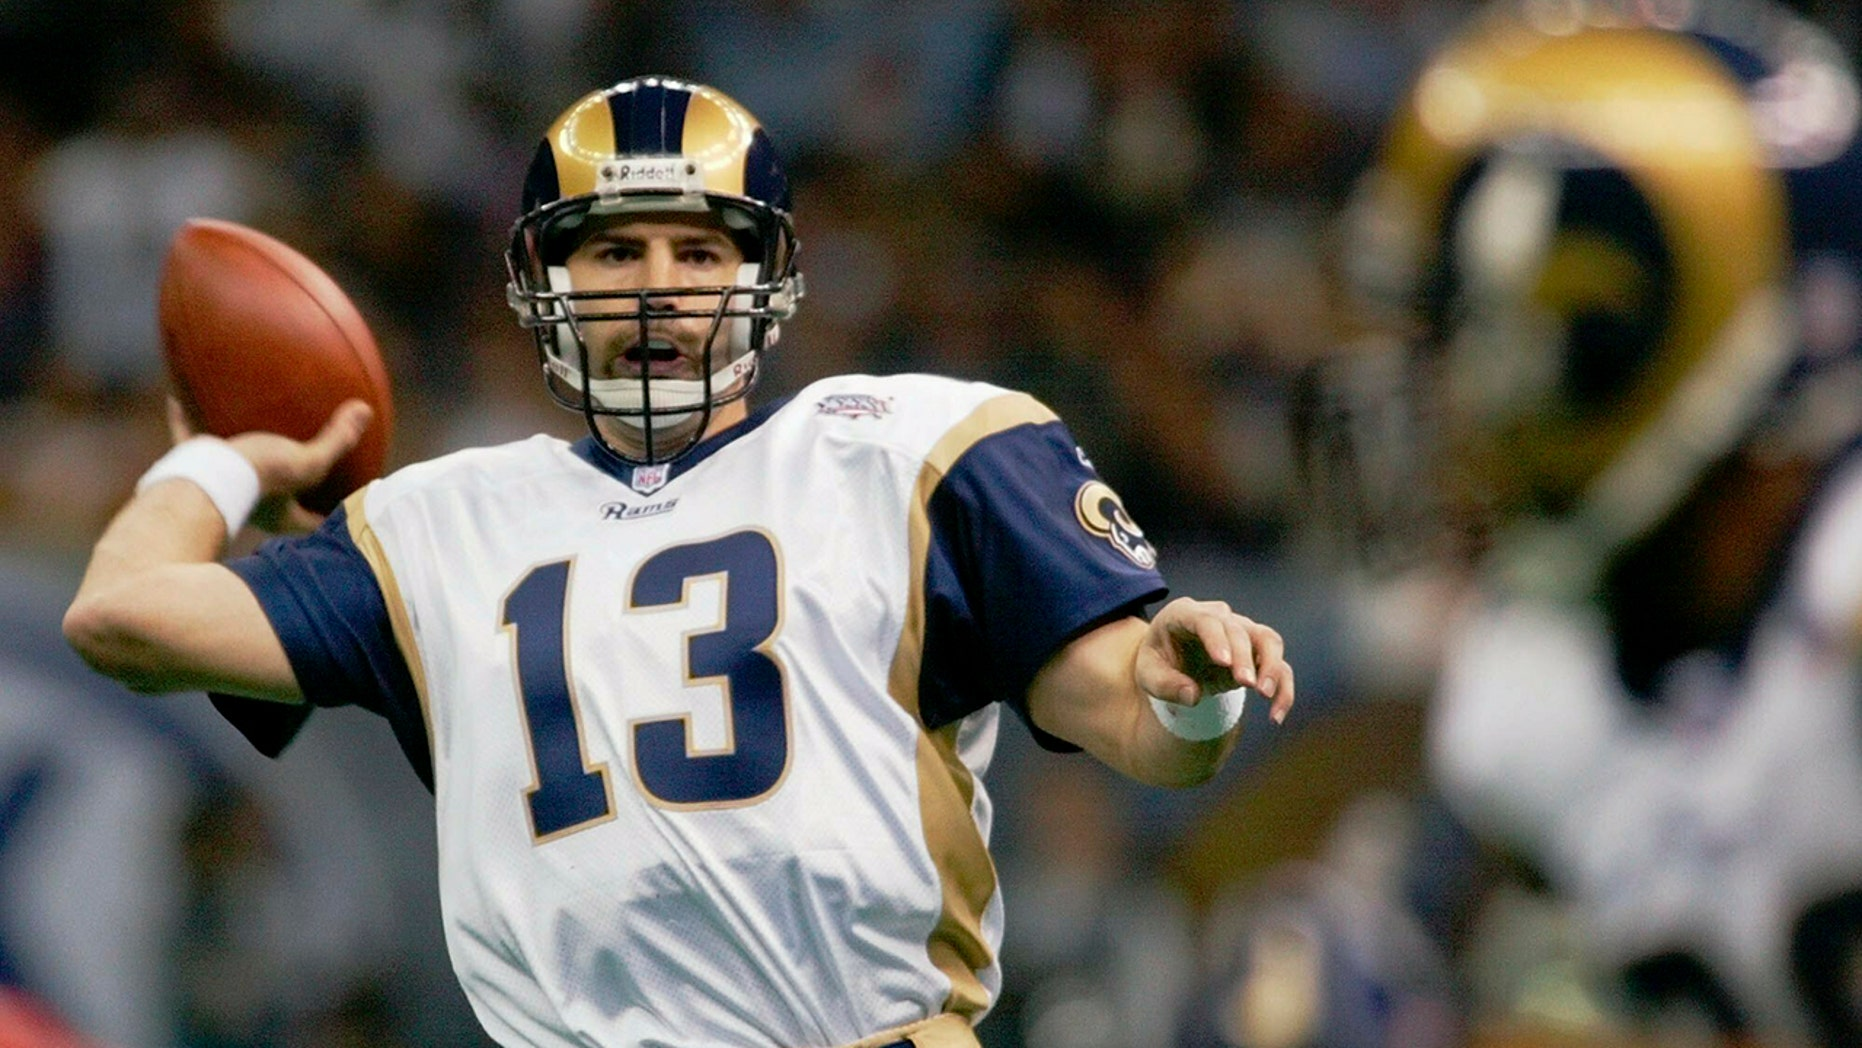 FILE - In this Feb. 3, 2002, file photo, St. Louis Rams quarterback Kurt Warner looks to pass to Marshall Faulk, right, in the first quarter against the New England Patriots in Super Bowl 36 in New Orleans.